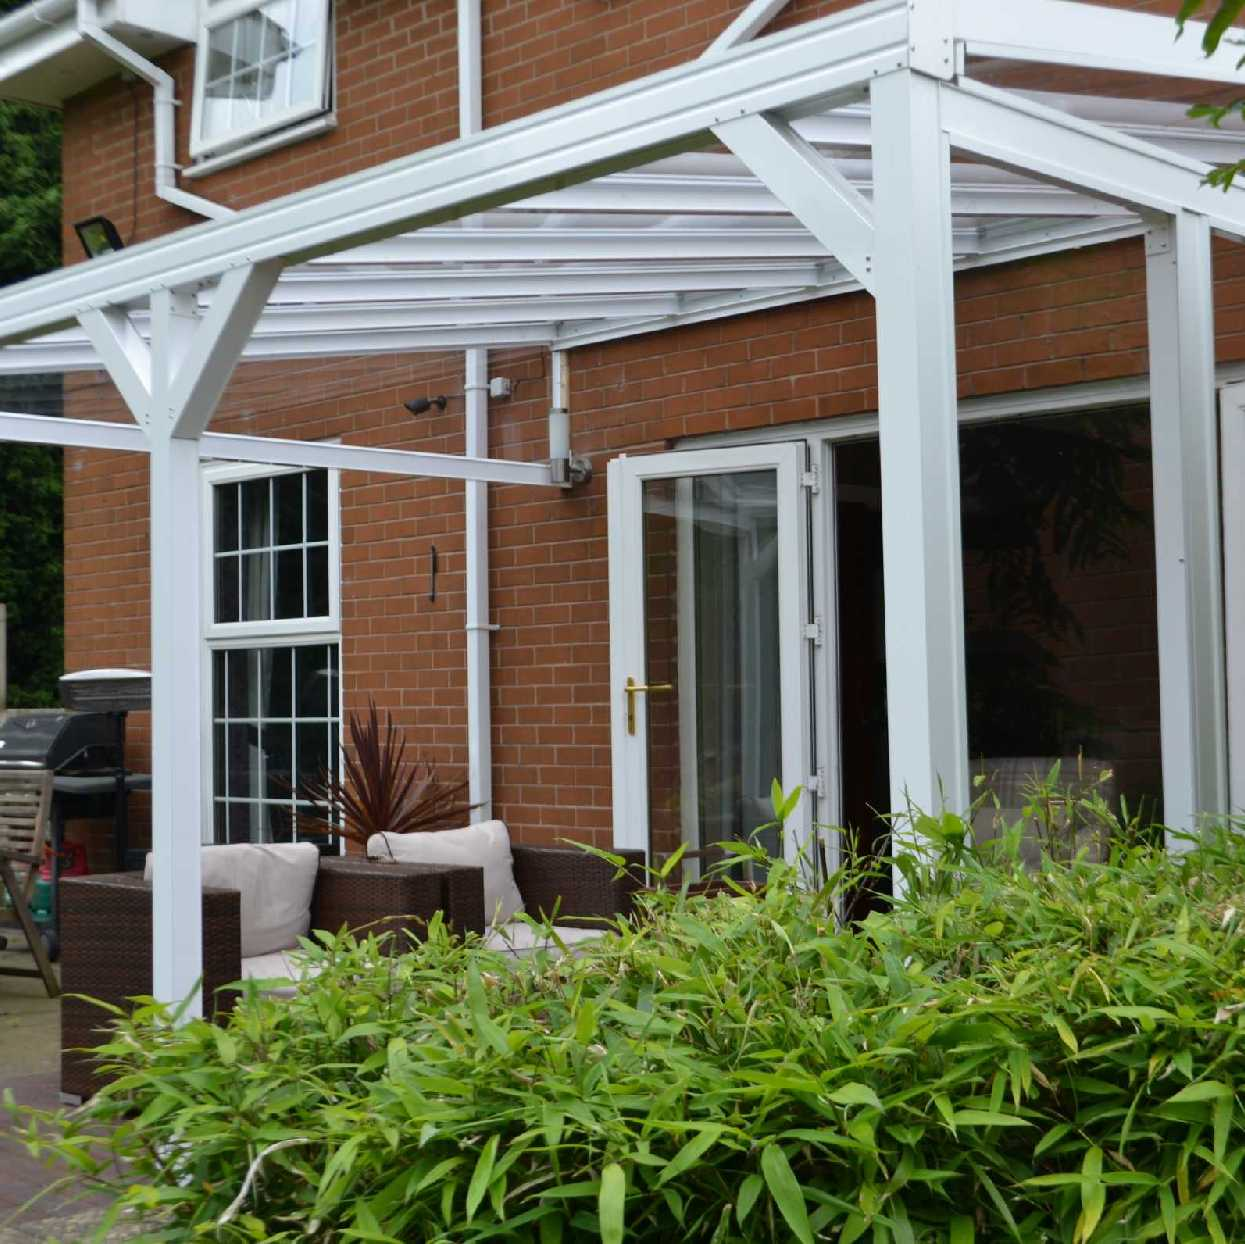 Omega Smart White Lean-To Canopy with 6mm Glass Clear Plate Polycarbonate Glazing - 8.4m (W) x 4.0m (P), (4) Supporting Posts from Omega Build